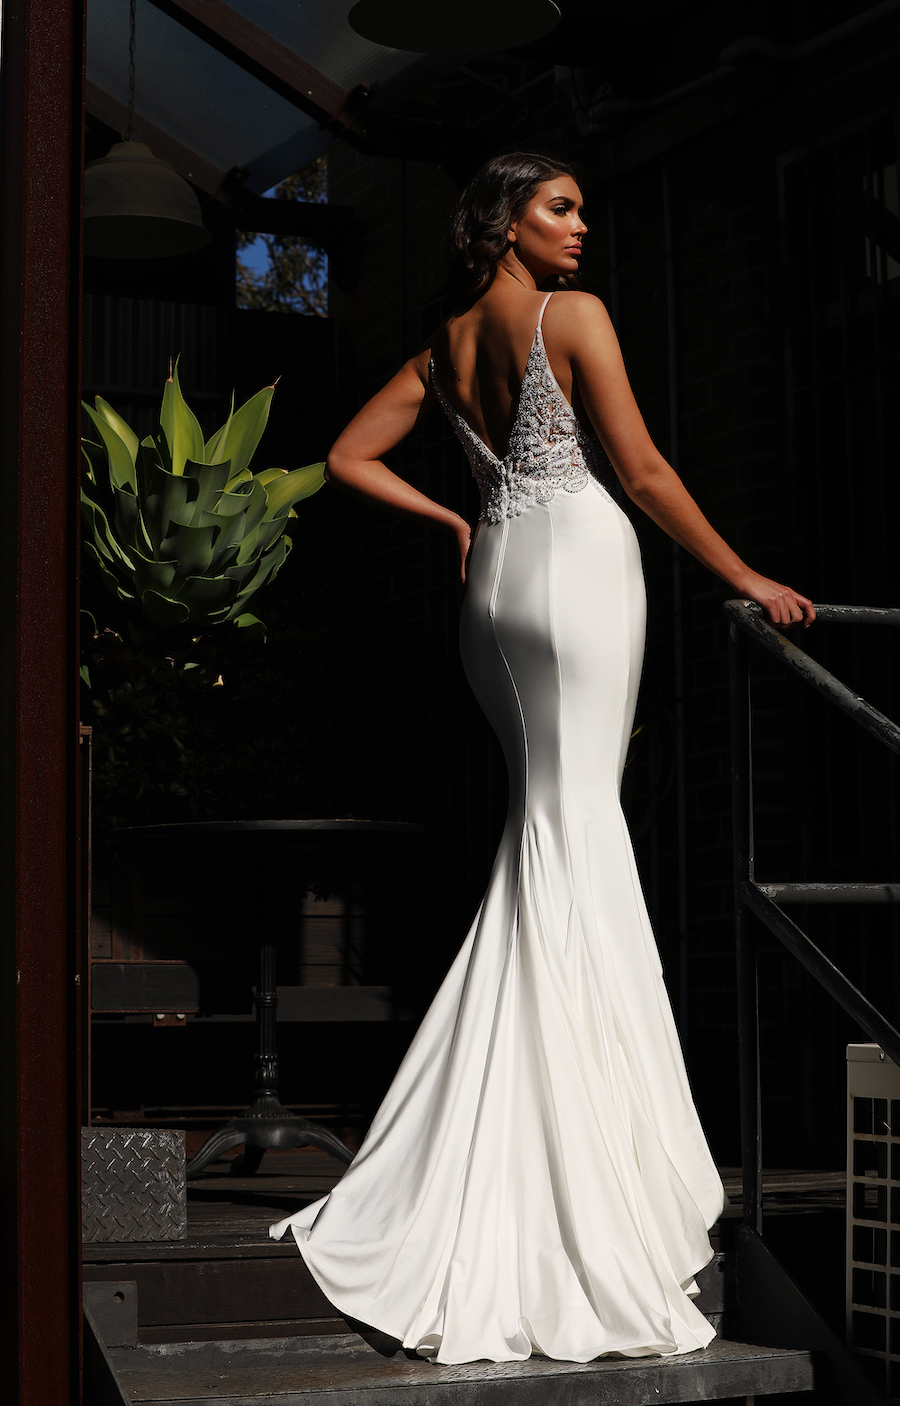 Spectacular gown with beaded bodice with a fishtale skirt.